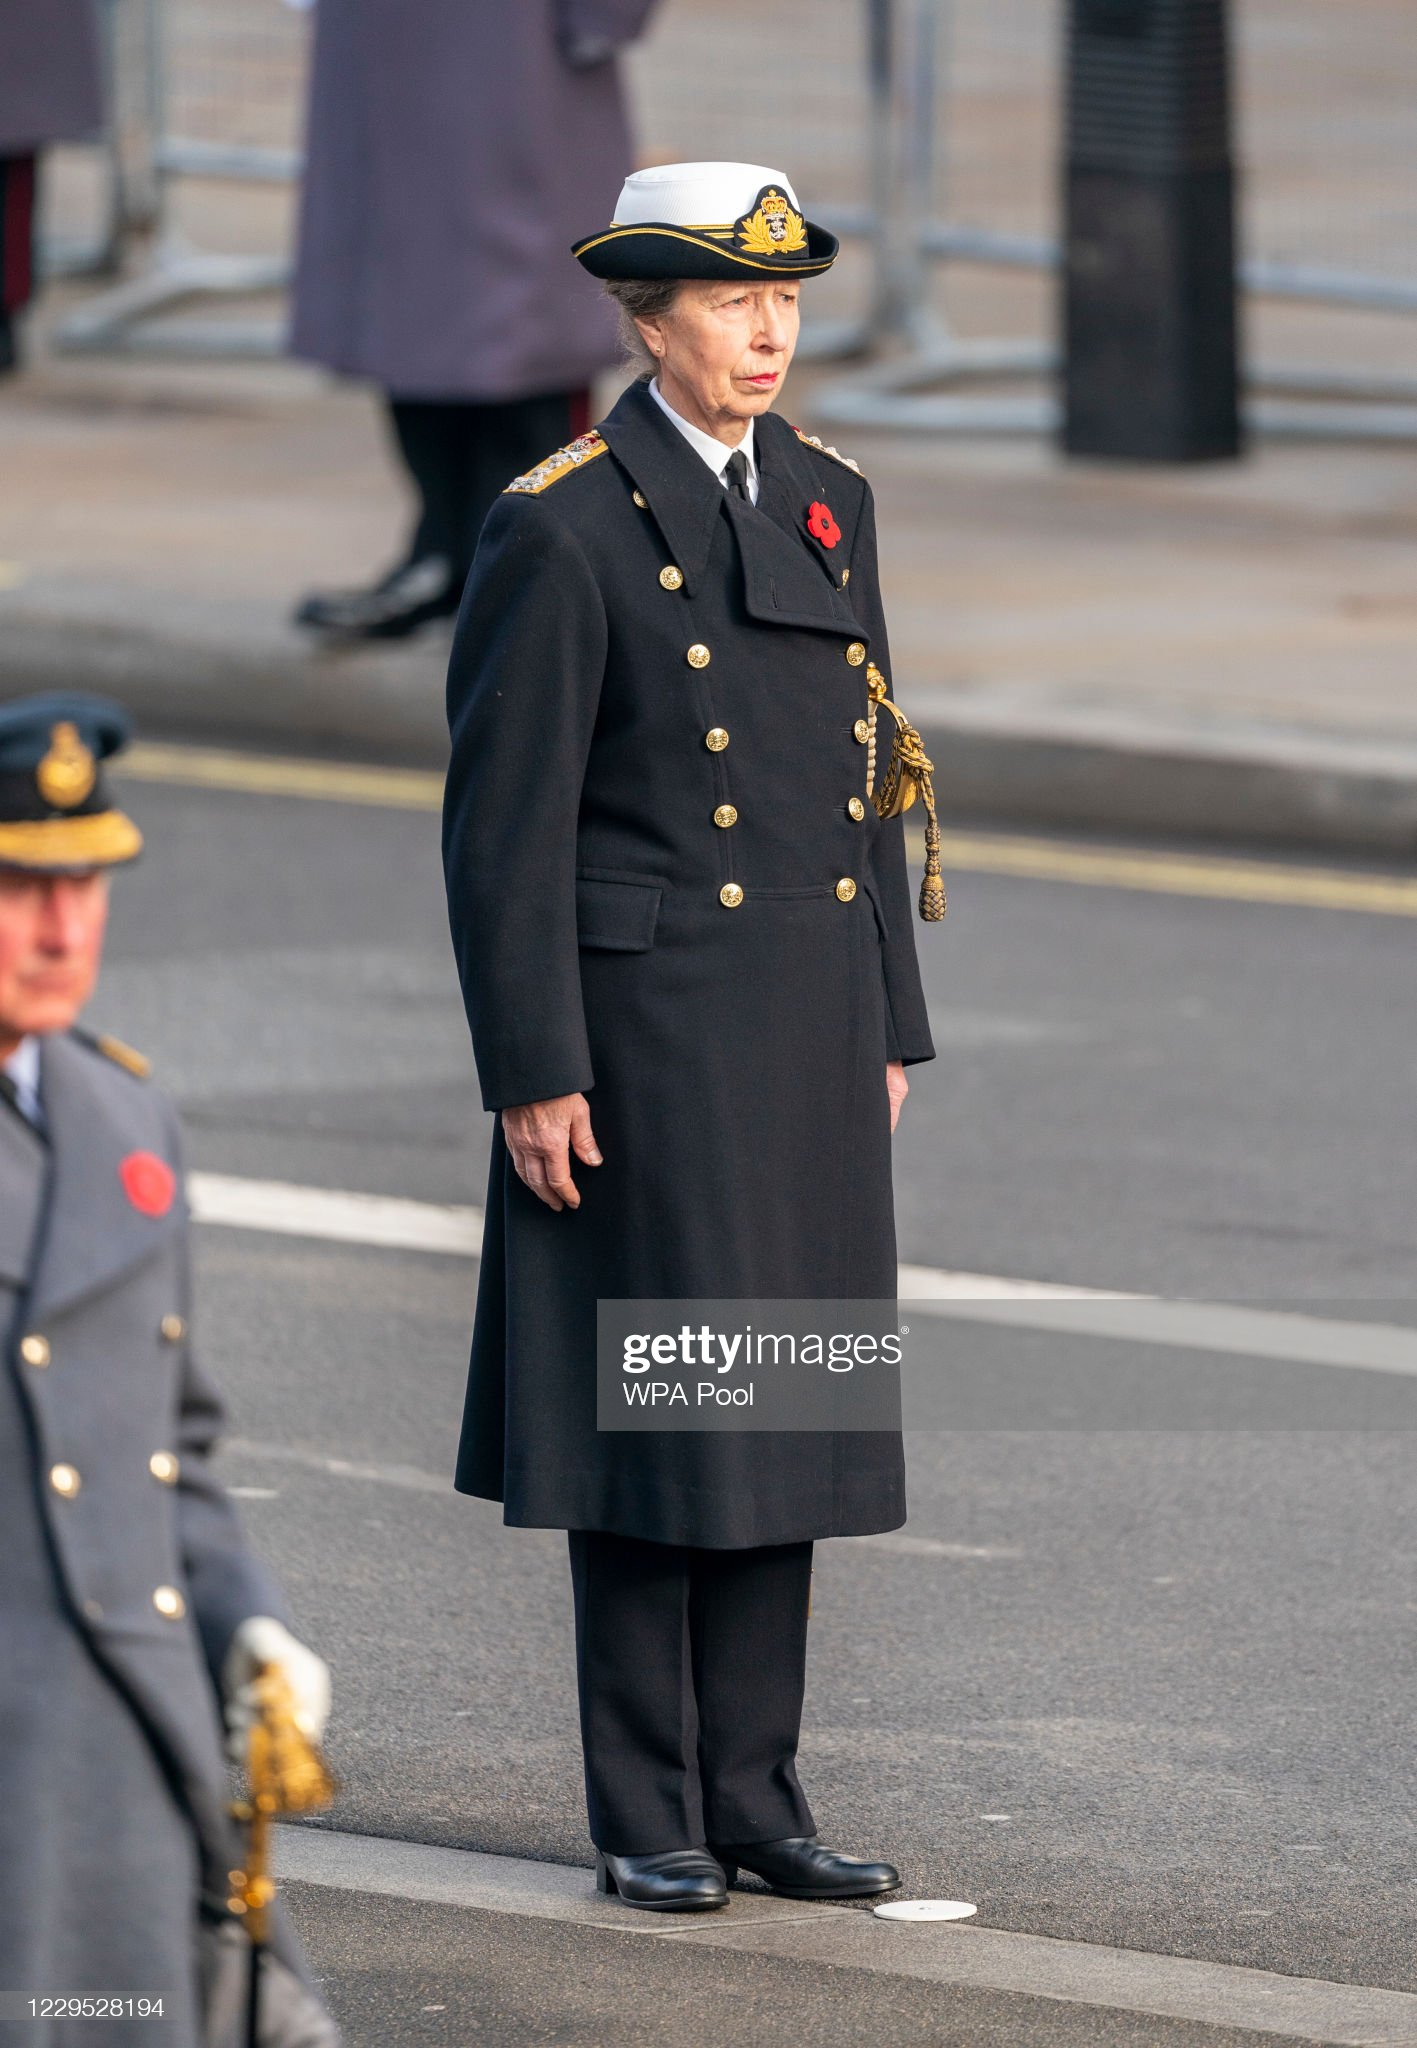 https://media.gettyimages.com/photos/anne-princess-royal-attends-the-national-service-of-remembrance-at-picture-id1229528194?s=2048x2048